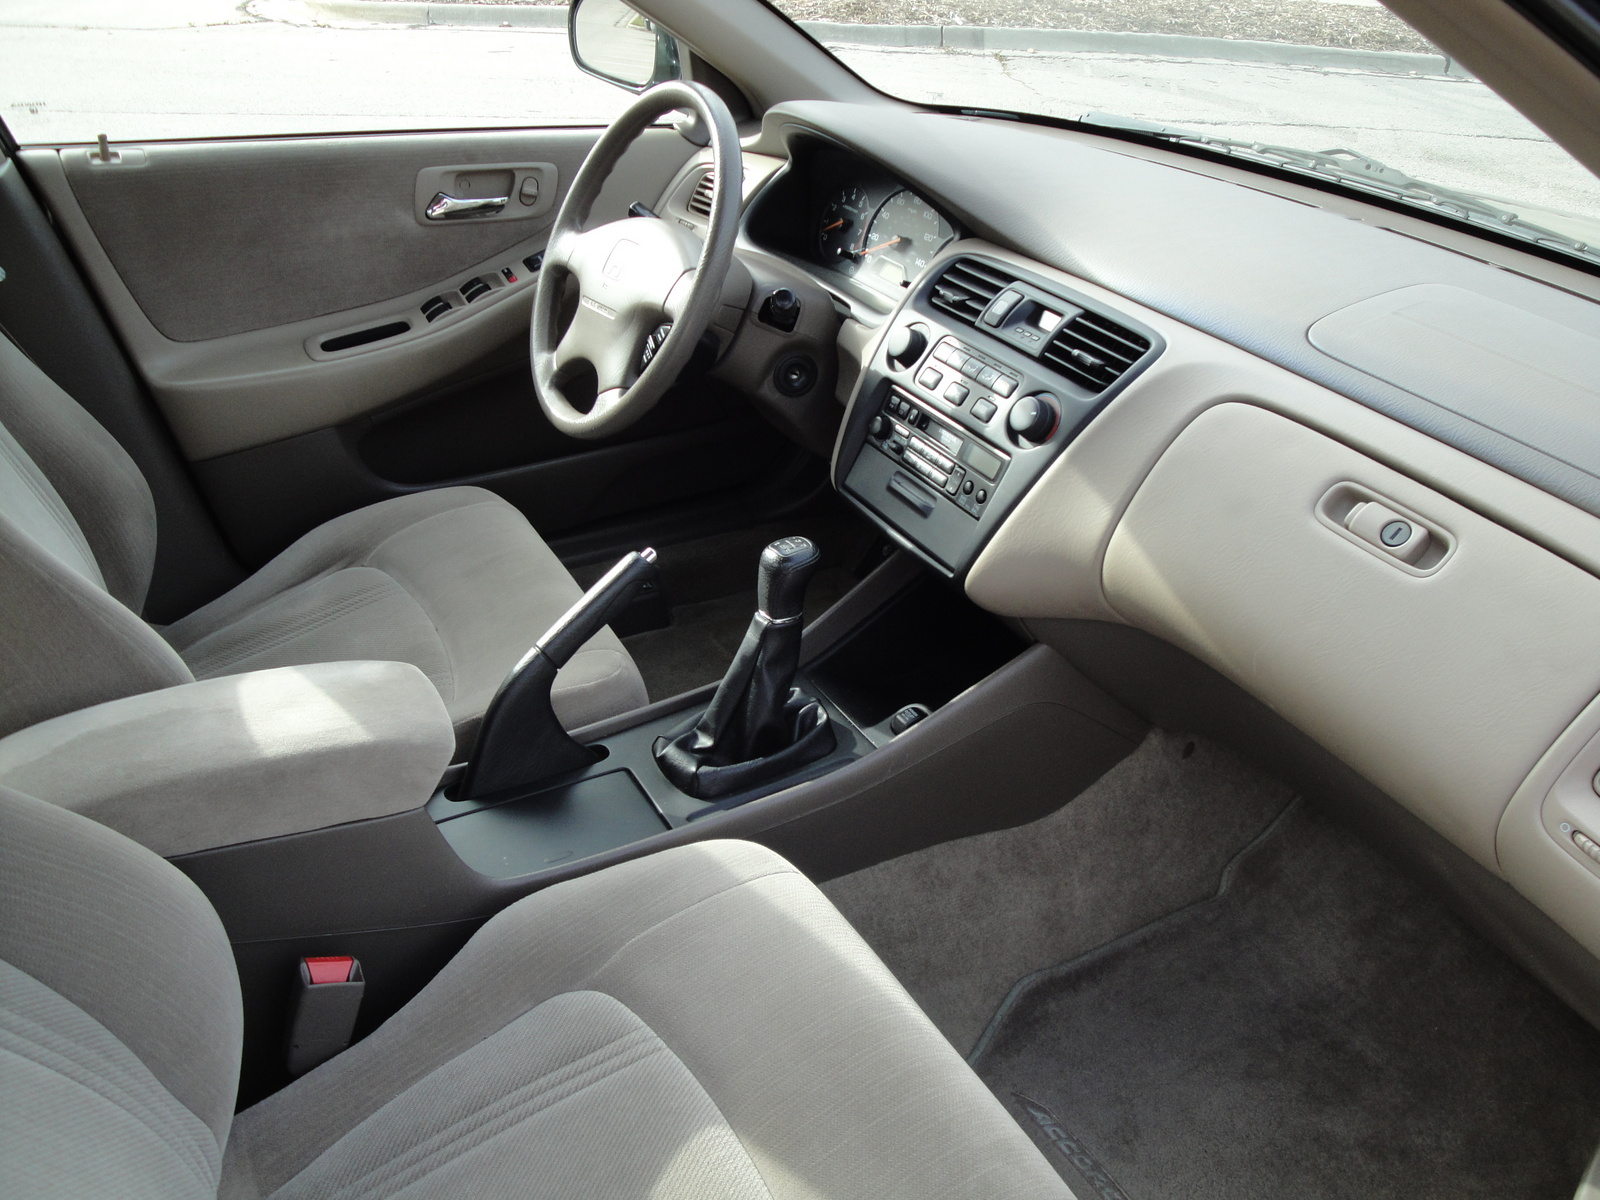 2000 Honda Accord Interior Pictures Cargurus